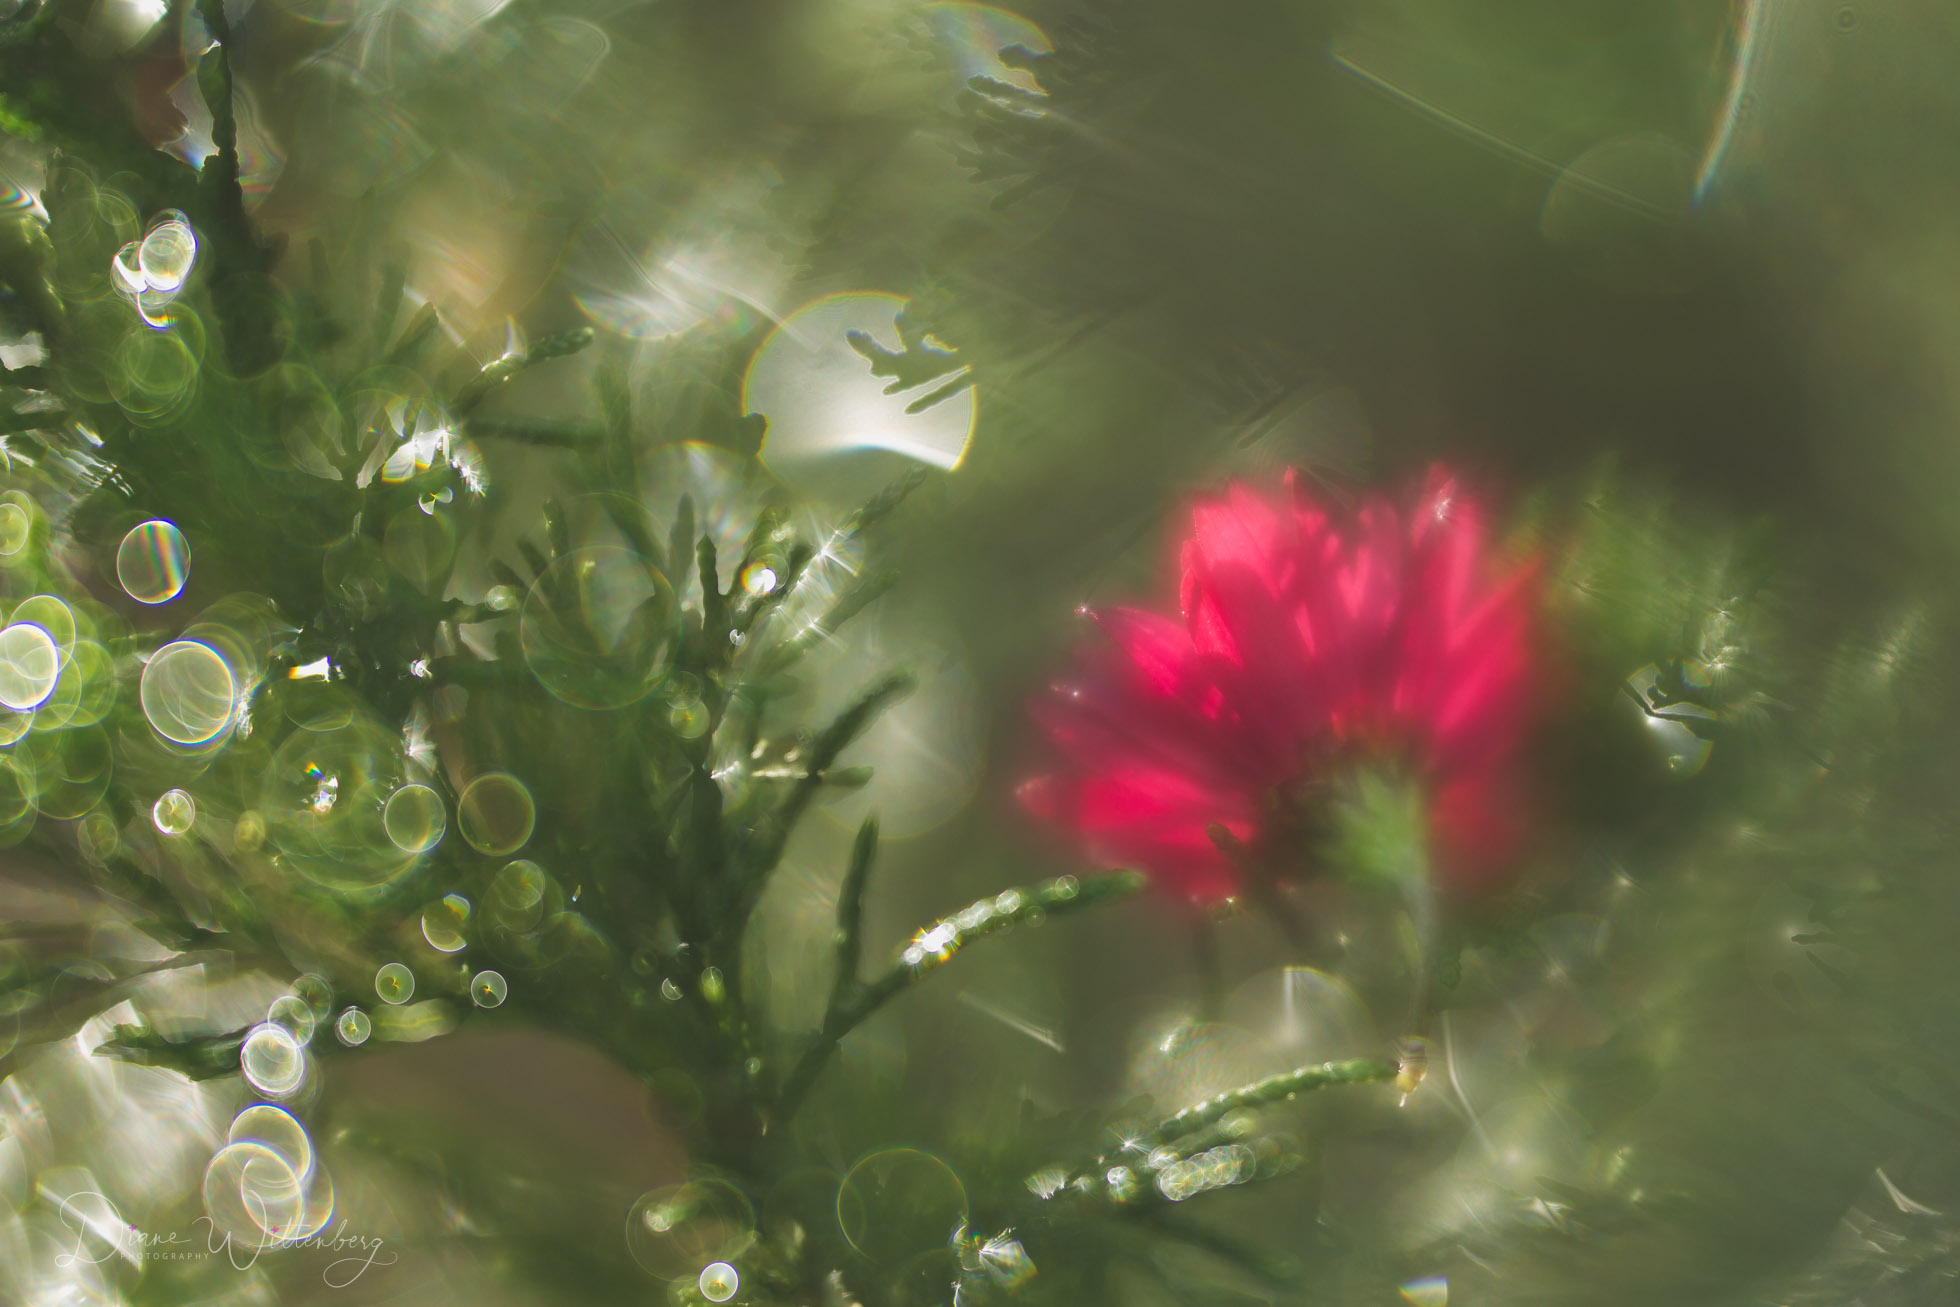 lensbaby image of a red flower in a green bush with bokeh